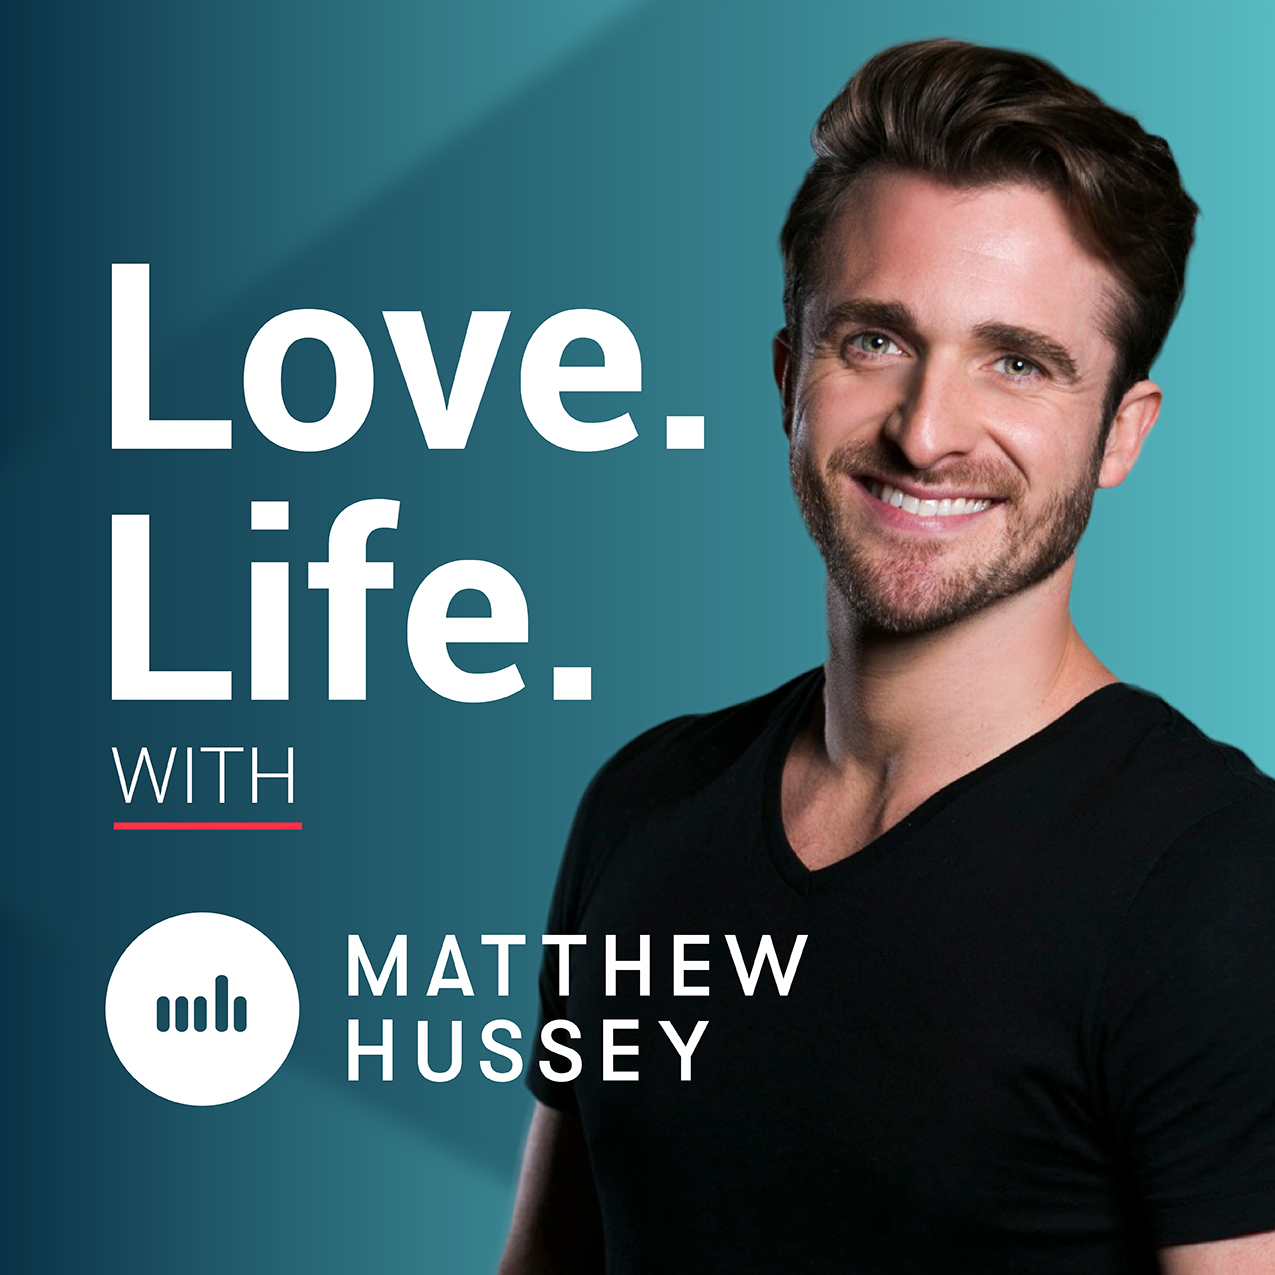 What Are YOUR Top 2 Non-Negotiables In A Relationship? (w/ Matt and Stephen)